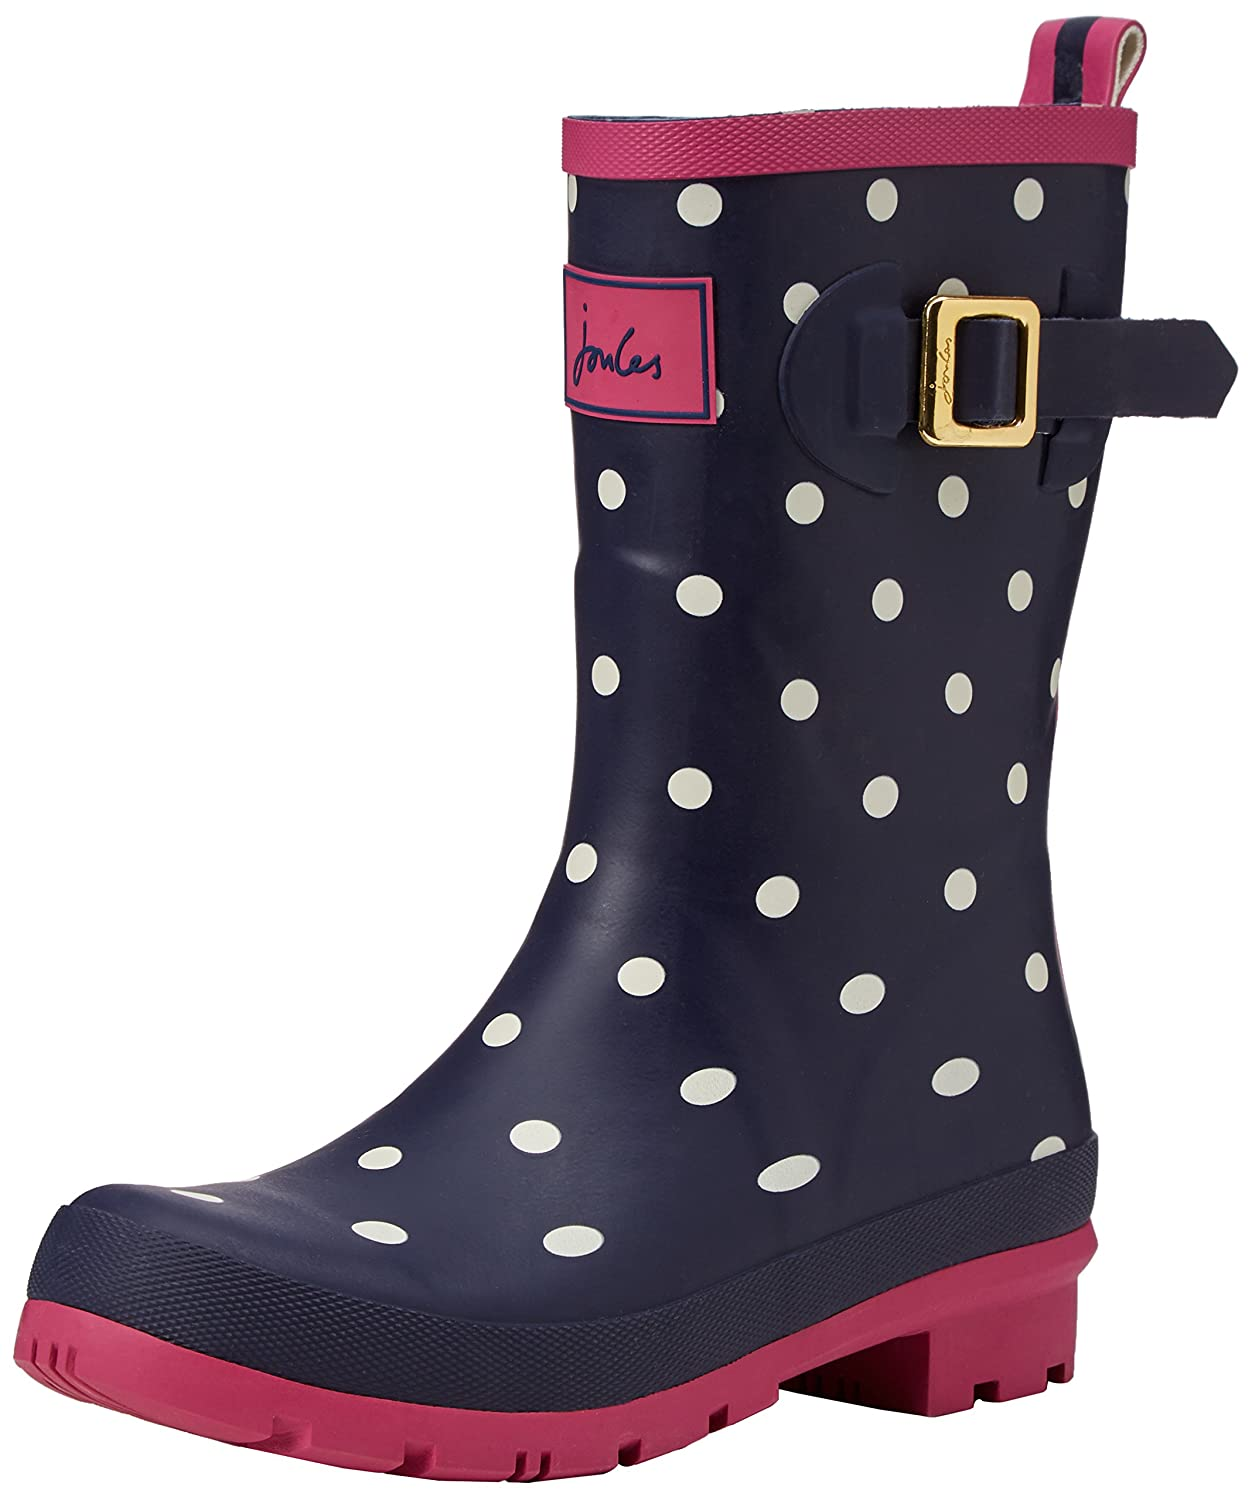 Navy Spot Joules Women's Molly Welly Rain Boot